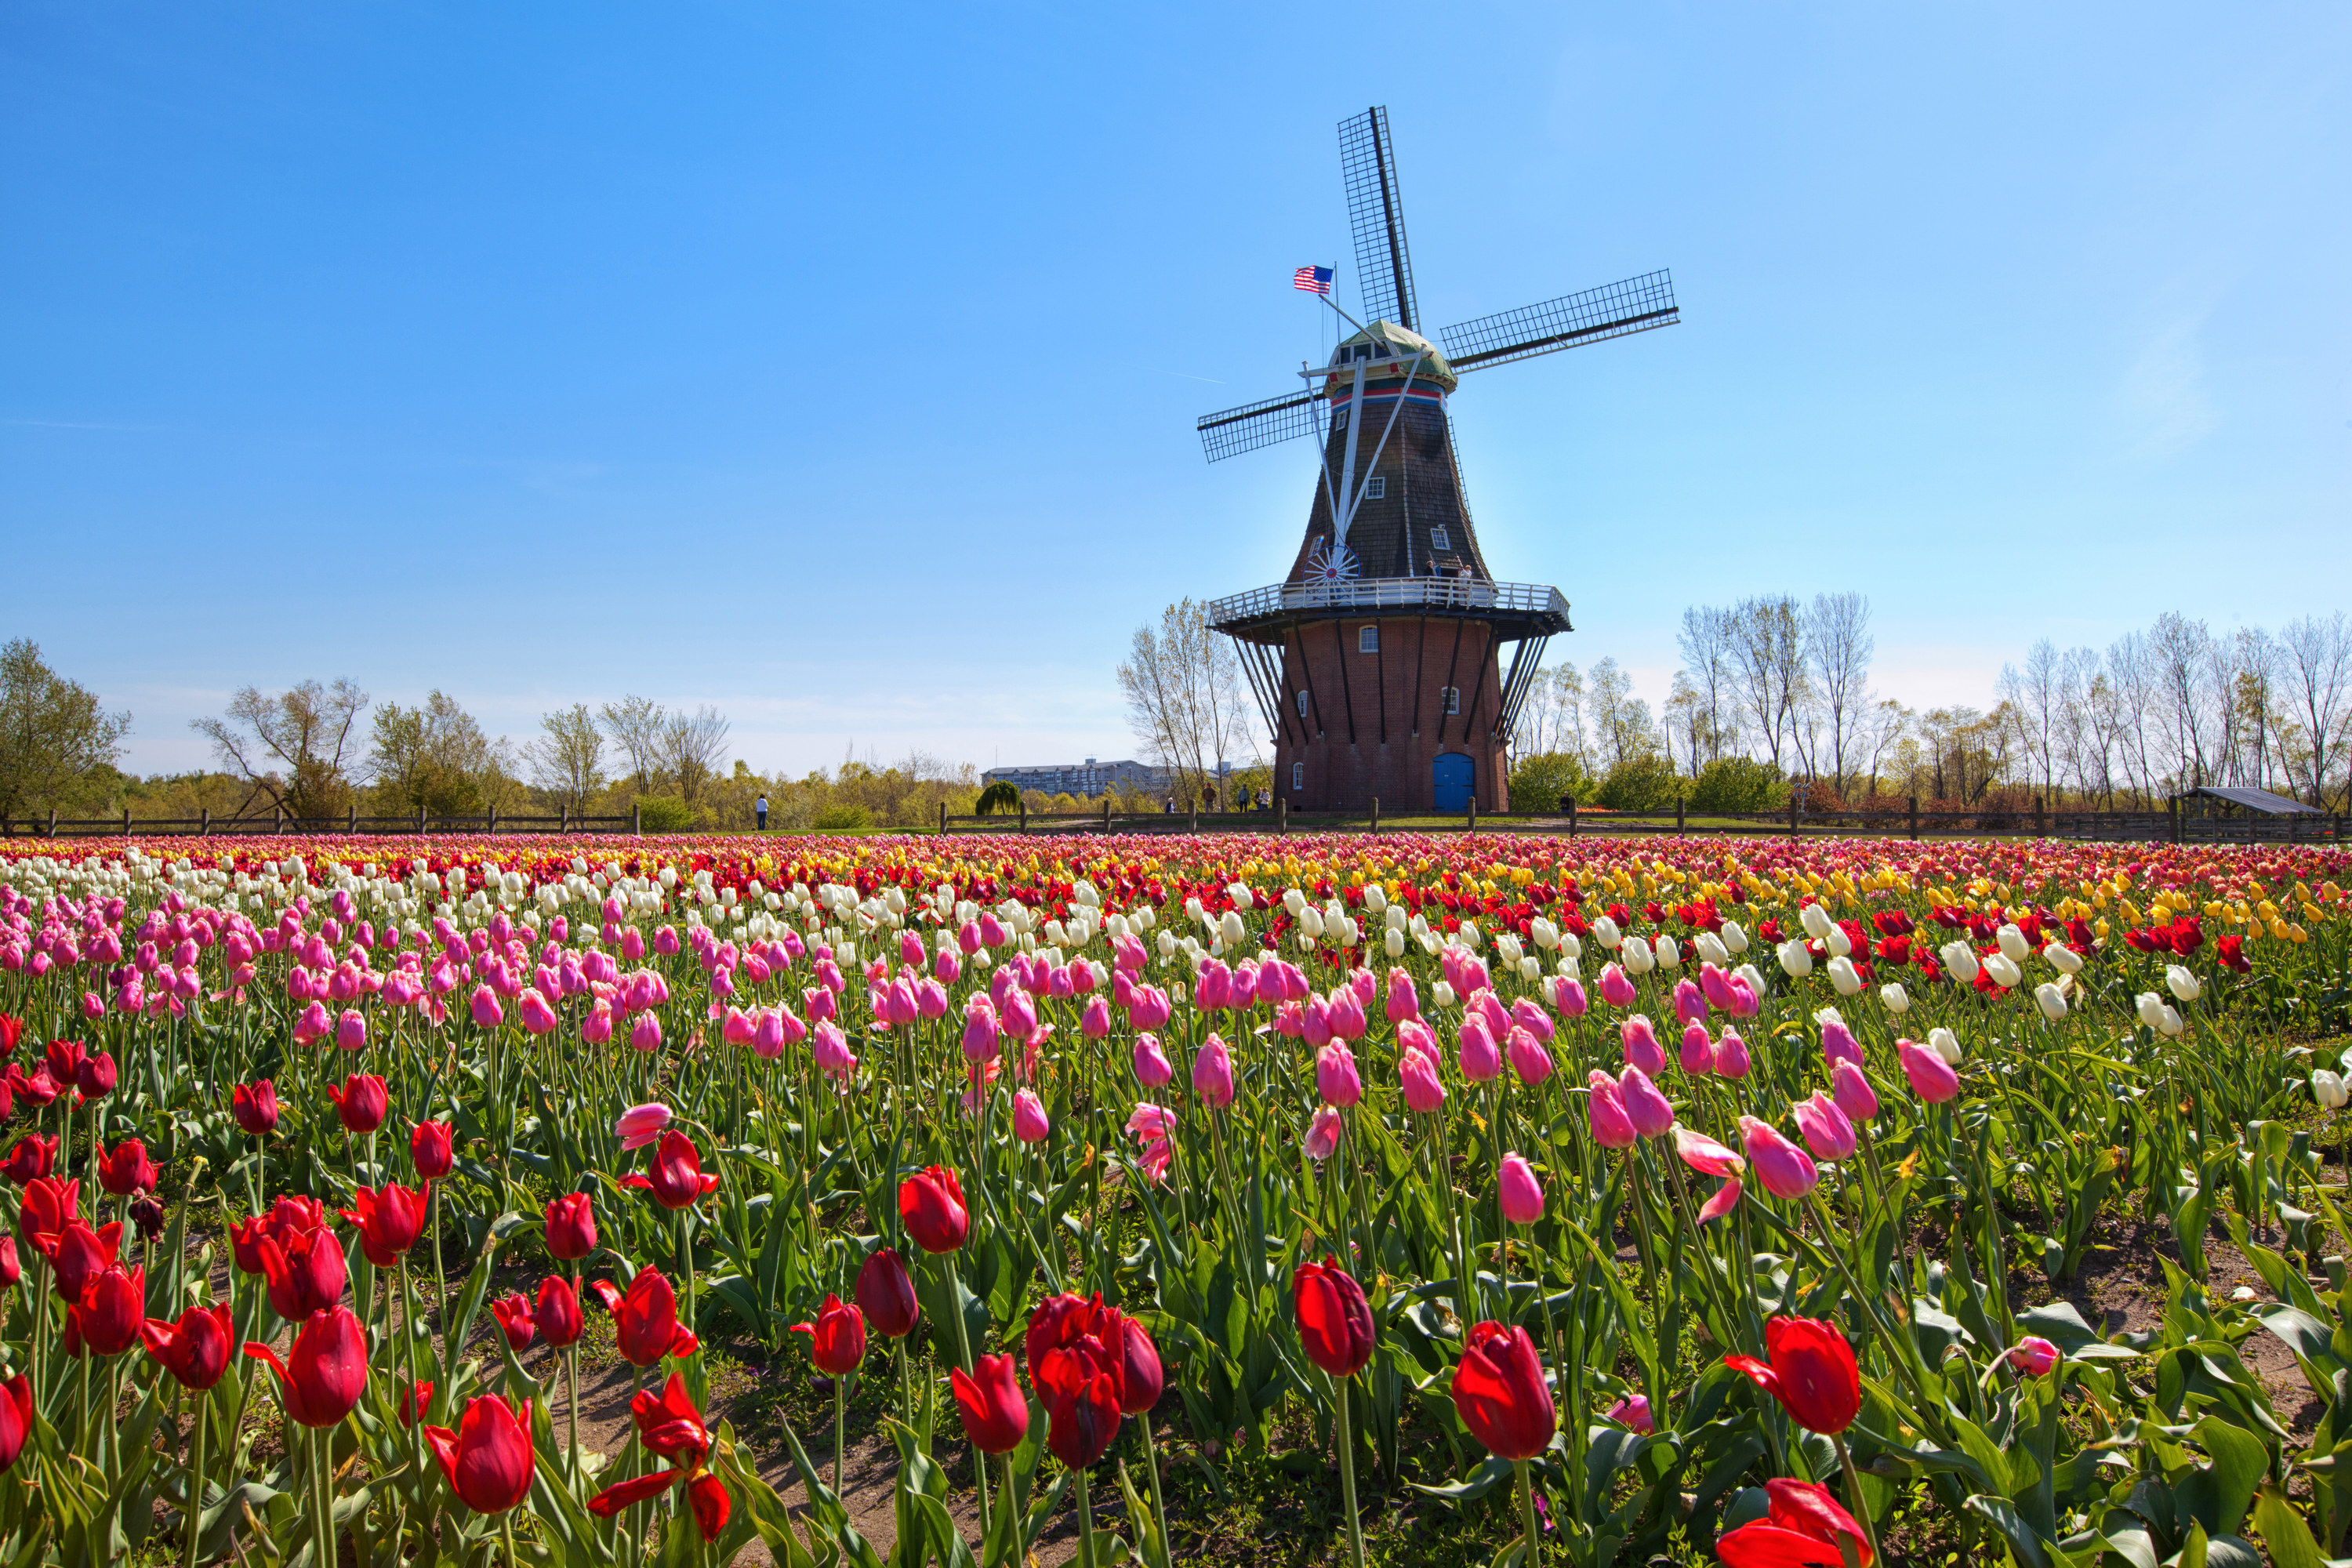 A windmill overlooking a field of tulips